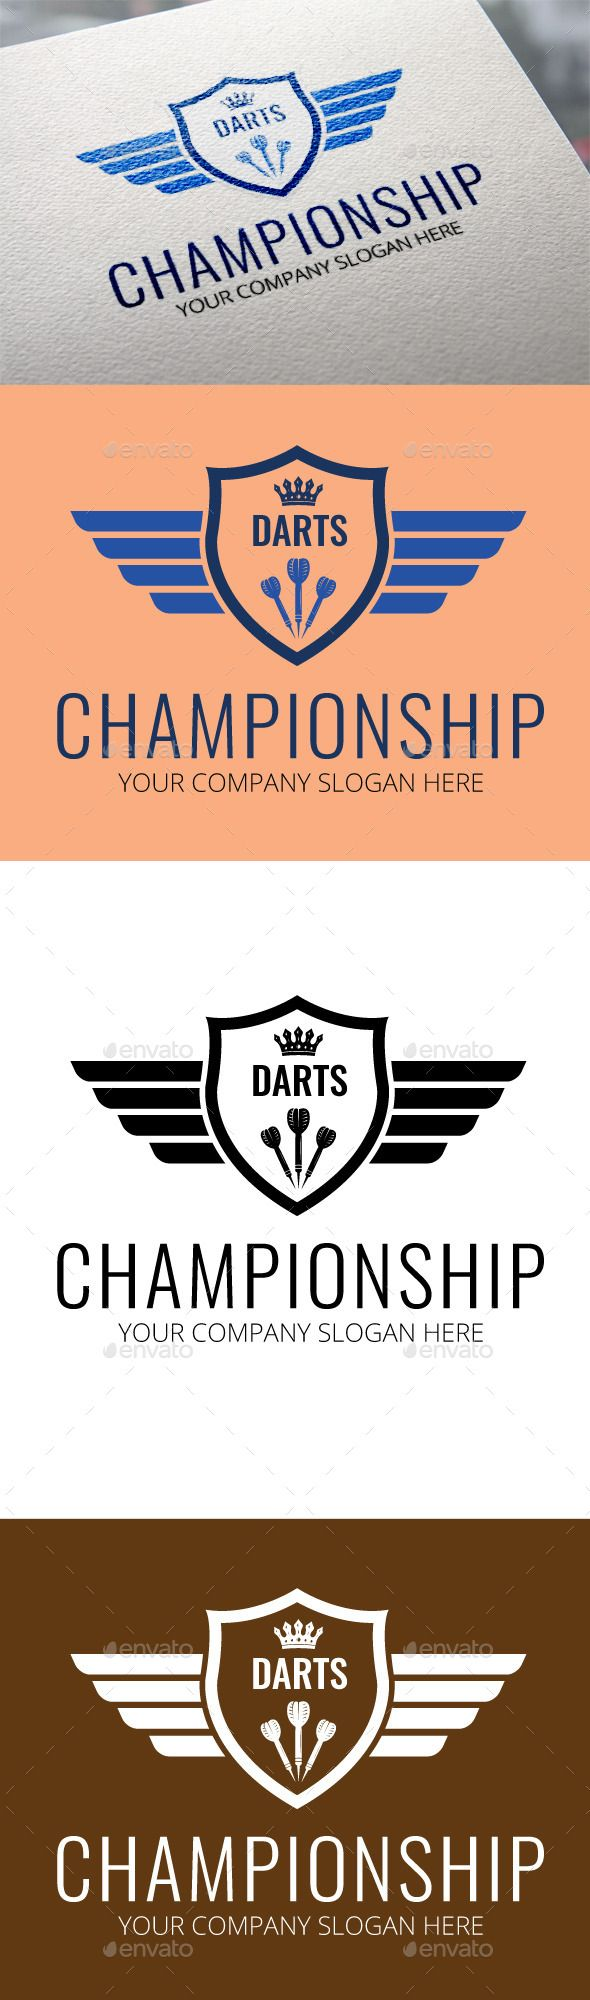 Logo of Darts Championship. It can be used for darts sports or business and company. CMYK, Full vectors, this logo can be easily